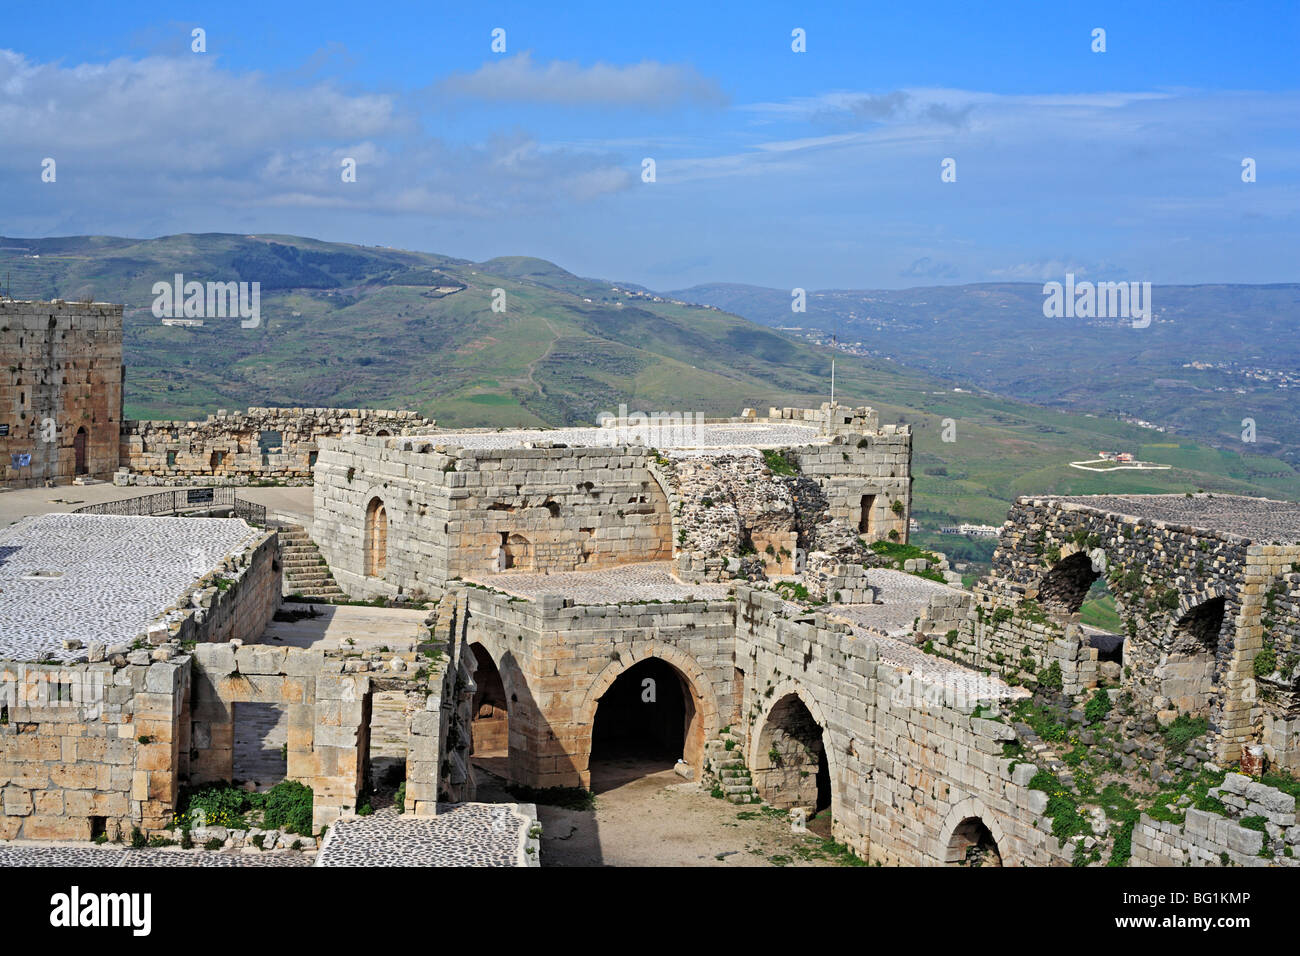 Crusaiders castle Krak des Chevaliers (Castle of the Knights), Qalaat al Hosn, (1140-1260), Syria - Stock Image